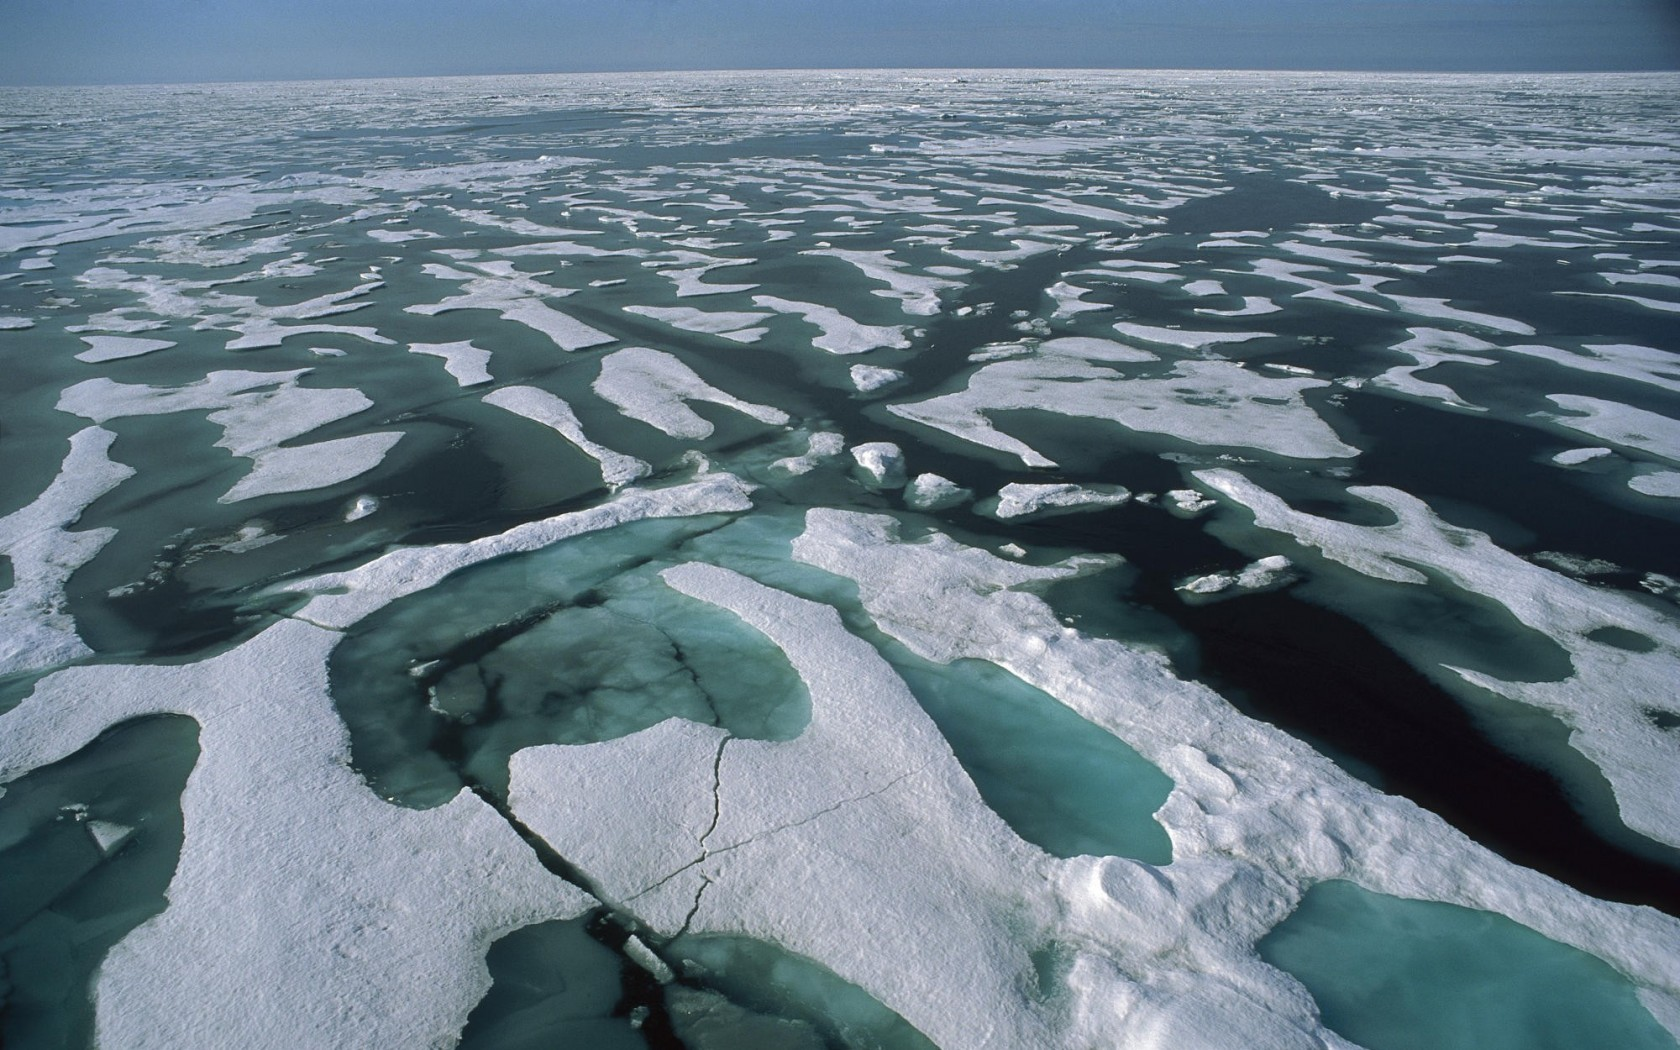 Solid Pack Ice and Surface Melt Water Arctic Ocean